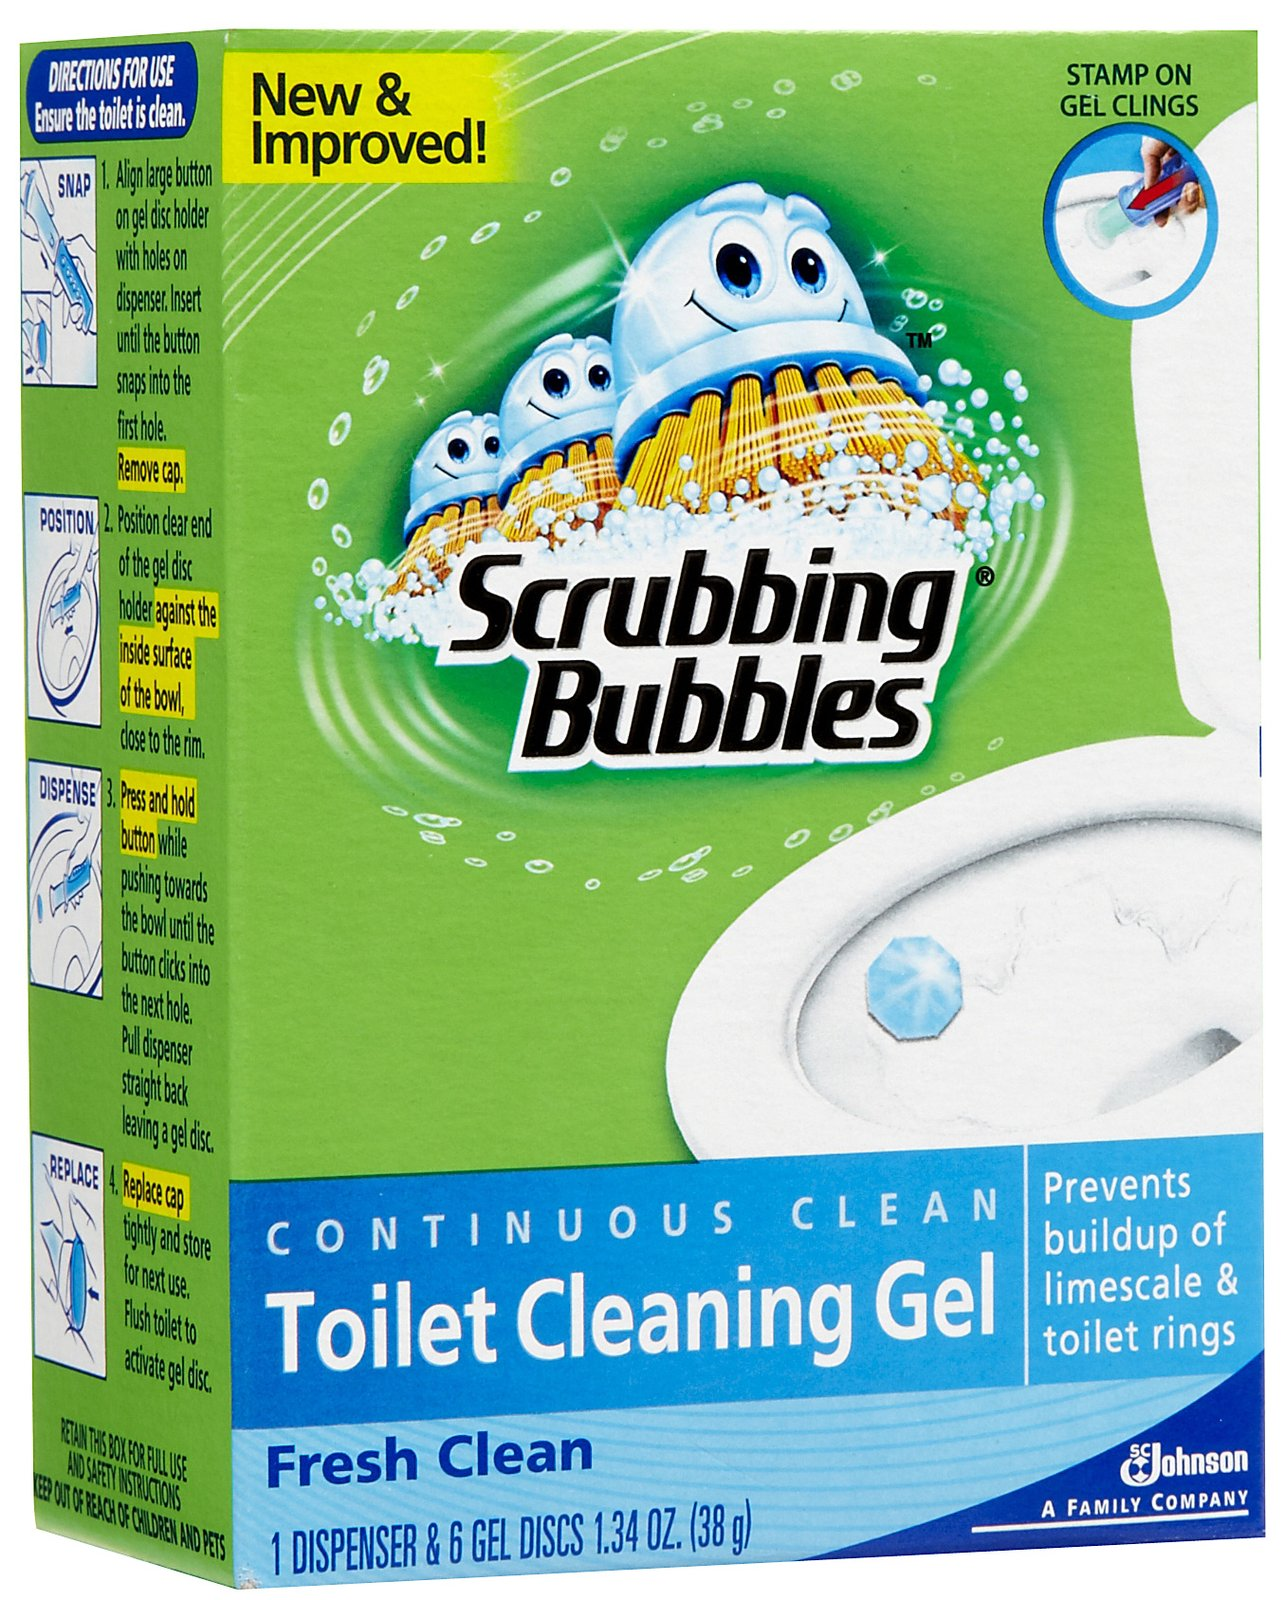 asj 116 1z Walgreens: FREE Scrubbing Bubbles Toilet Cleaning Gel + $2 Money Maker